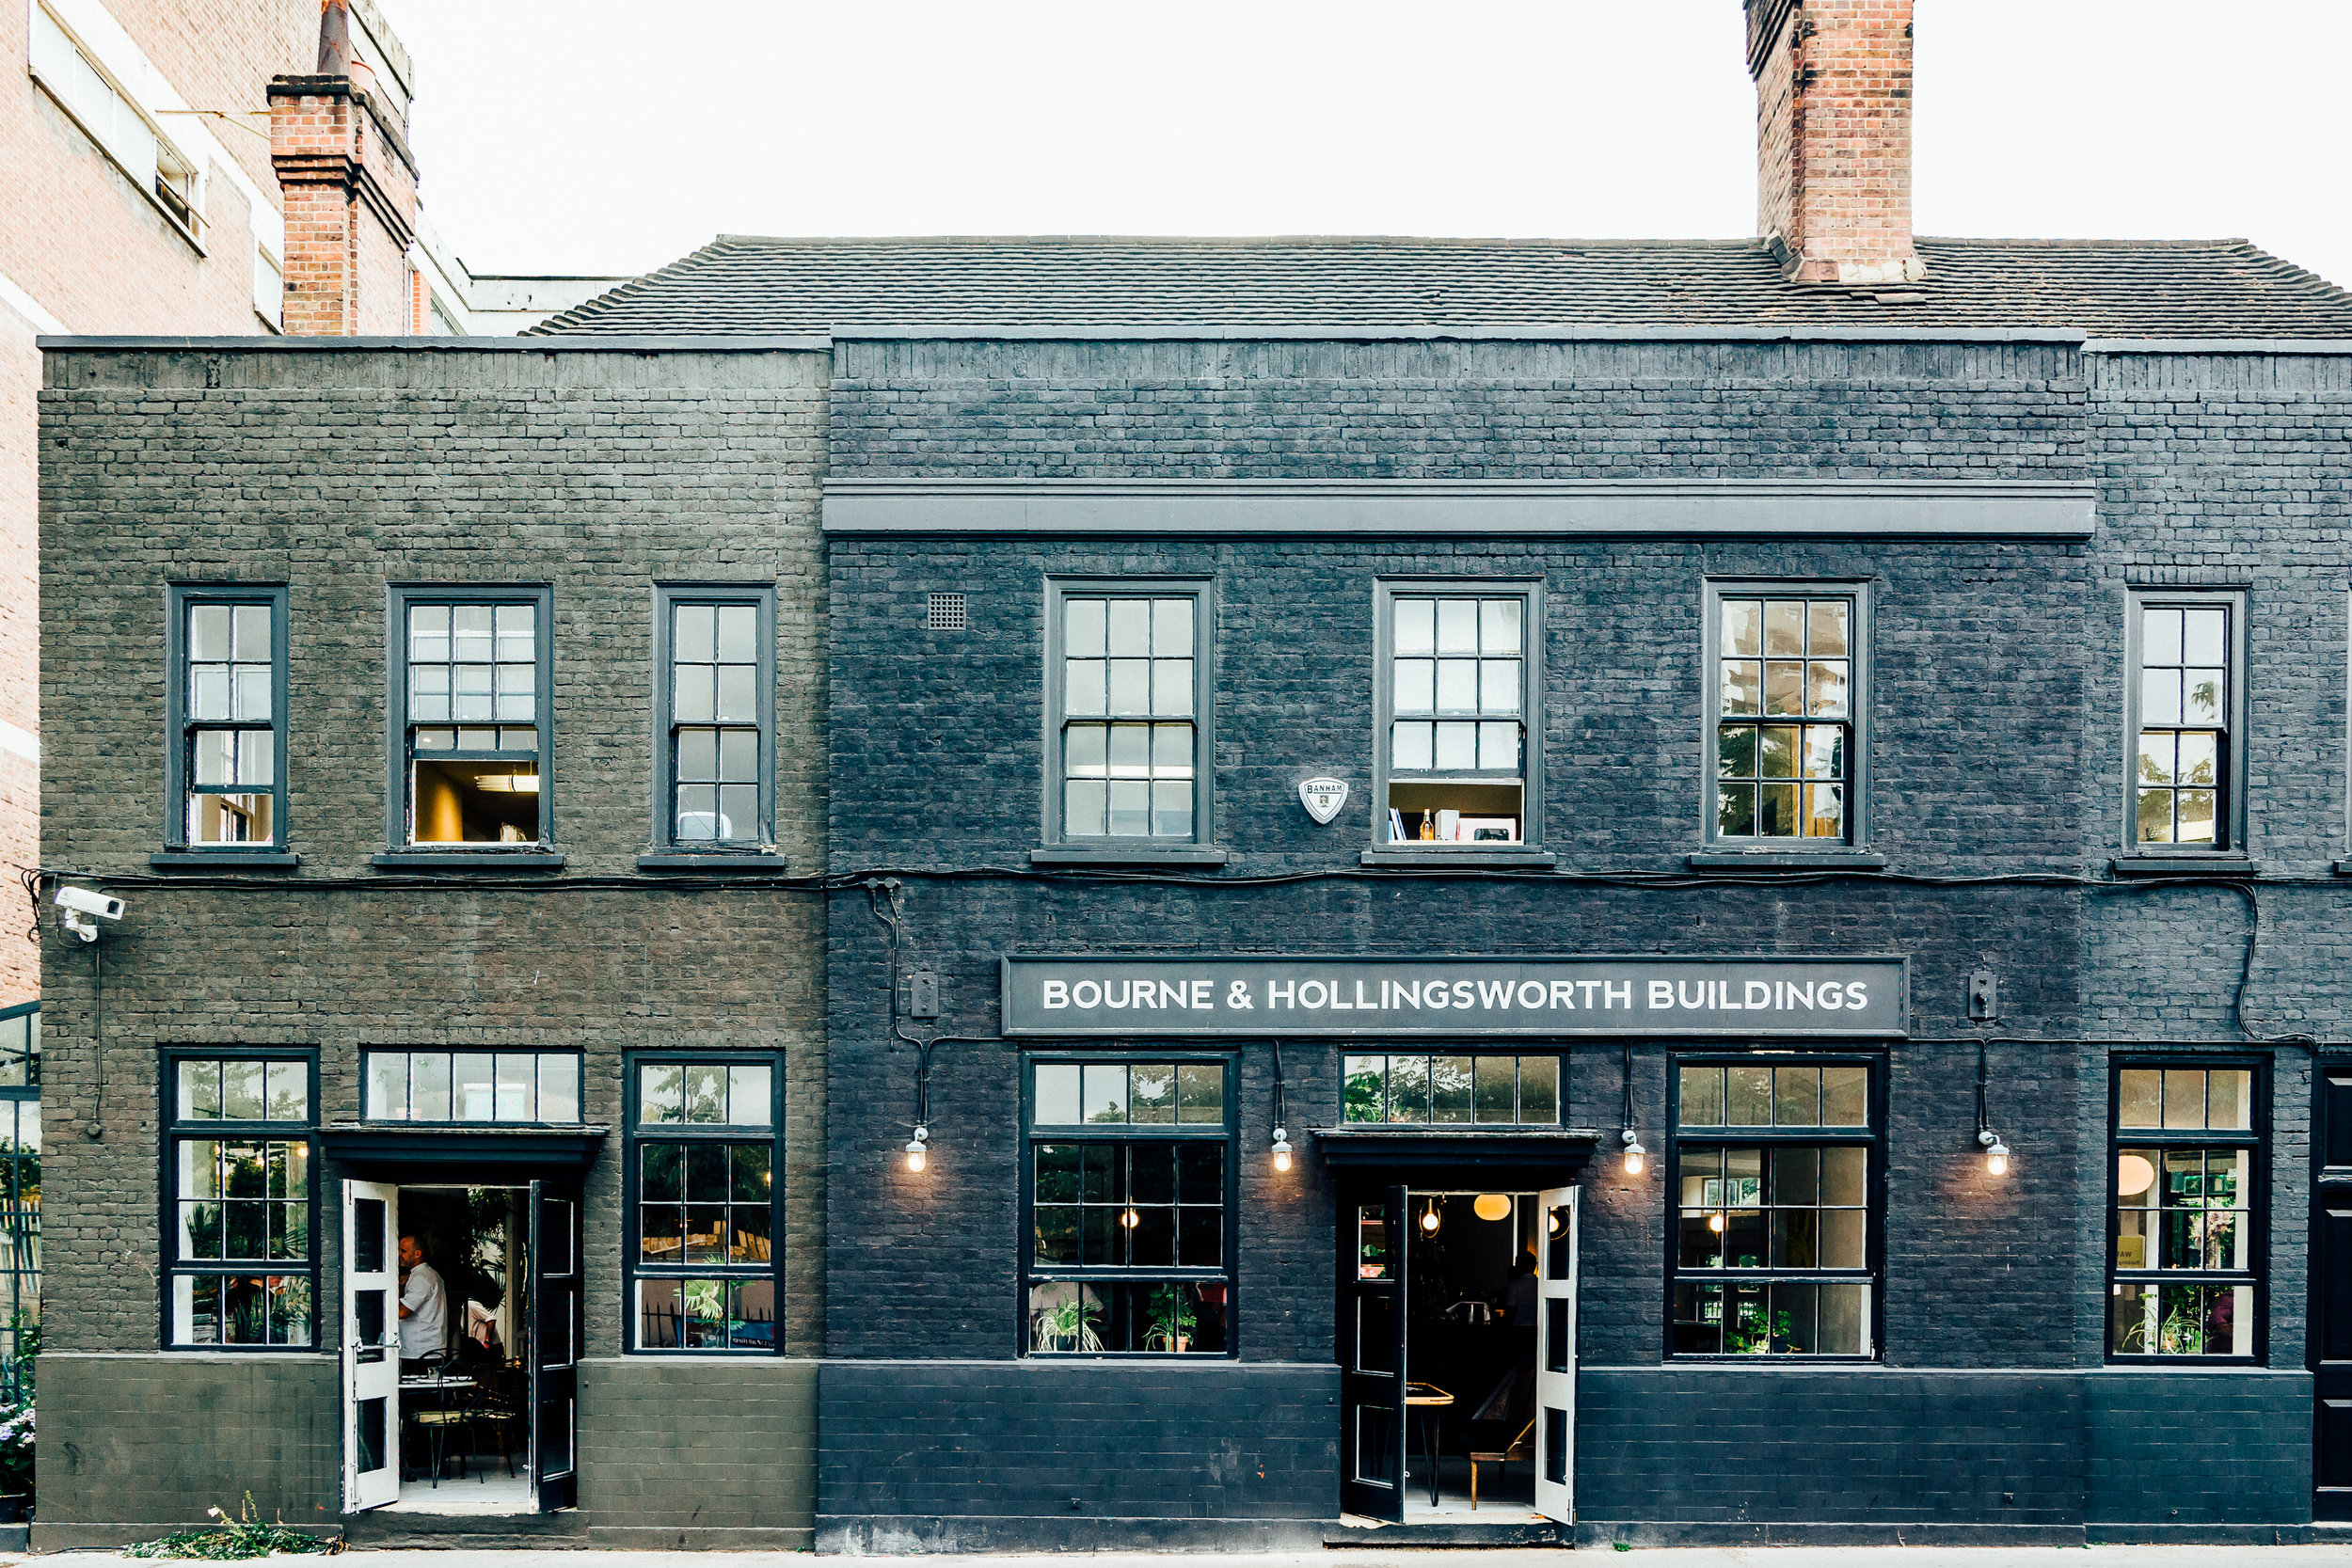 Bourne & Hollingsworth Buildings in Clerkenwell just off Exmouth Market. A restaurant, bar and club all under one roof.